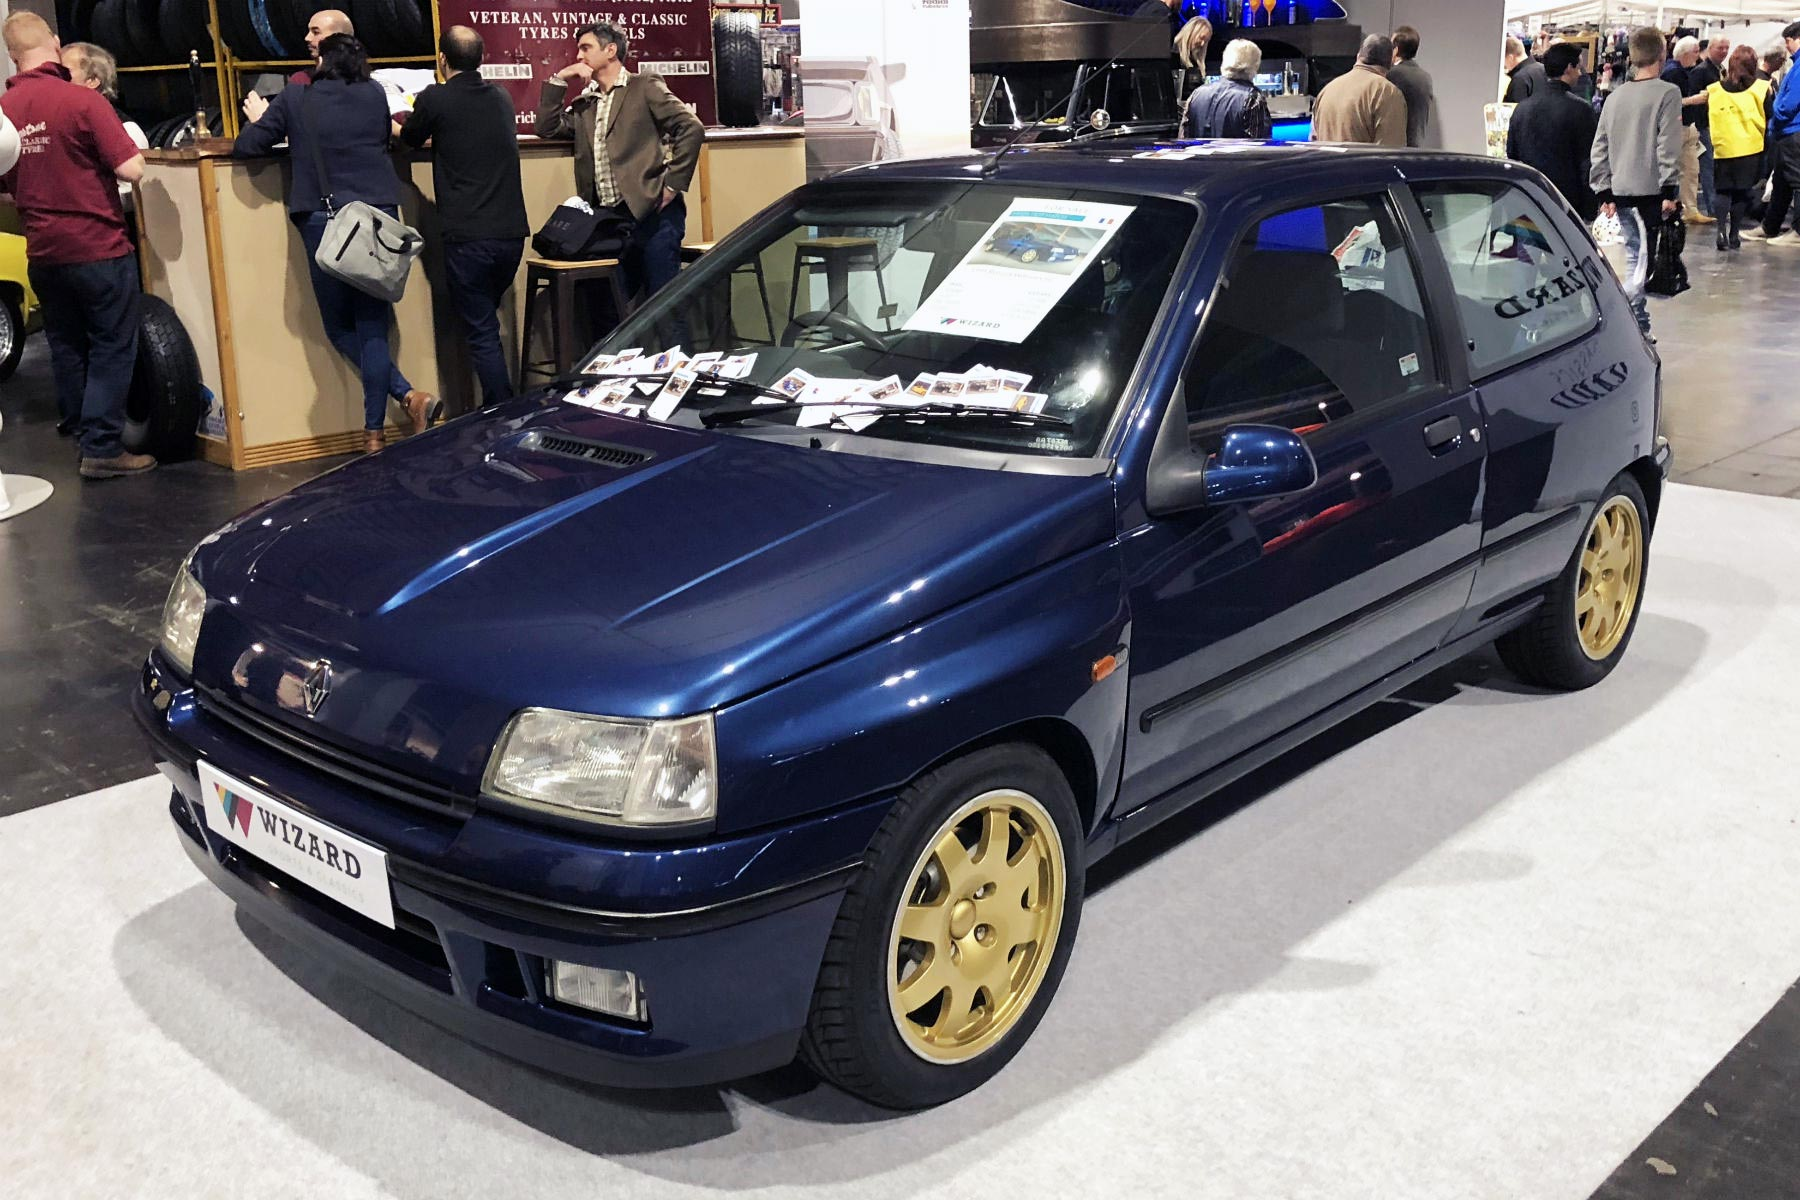 Renault Clio Williams at the 2018 NEC Classic Motor Show